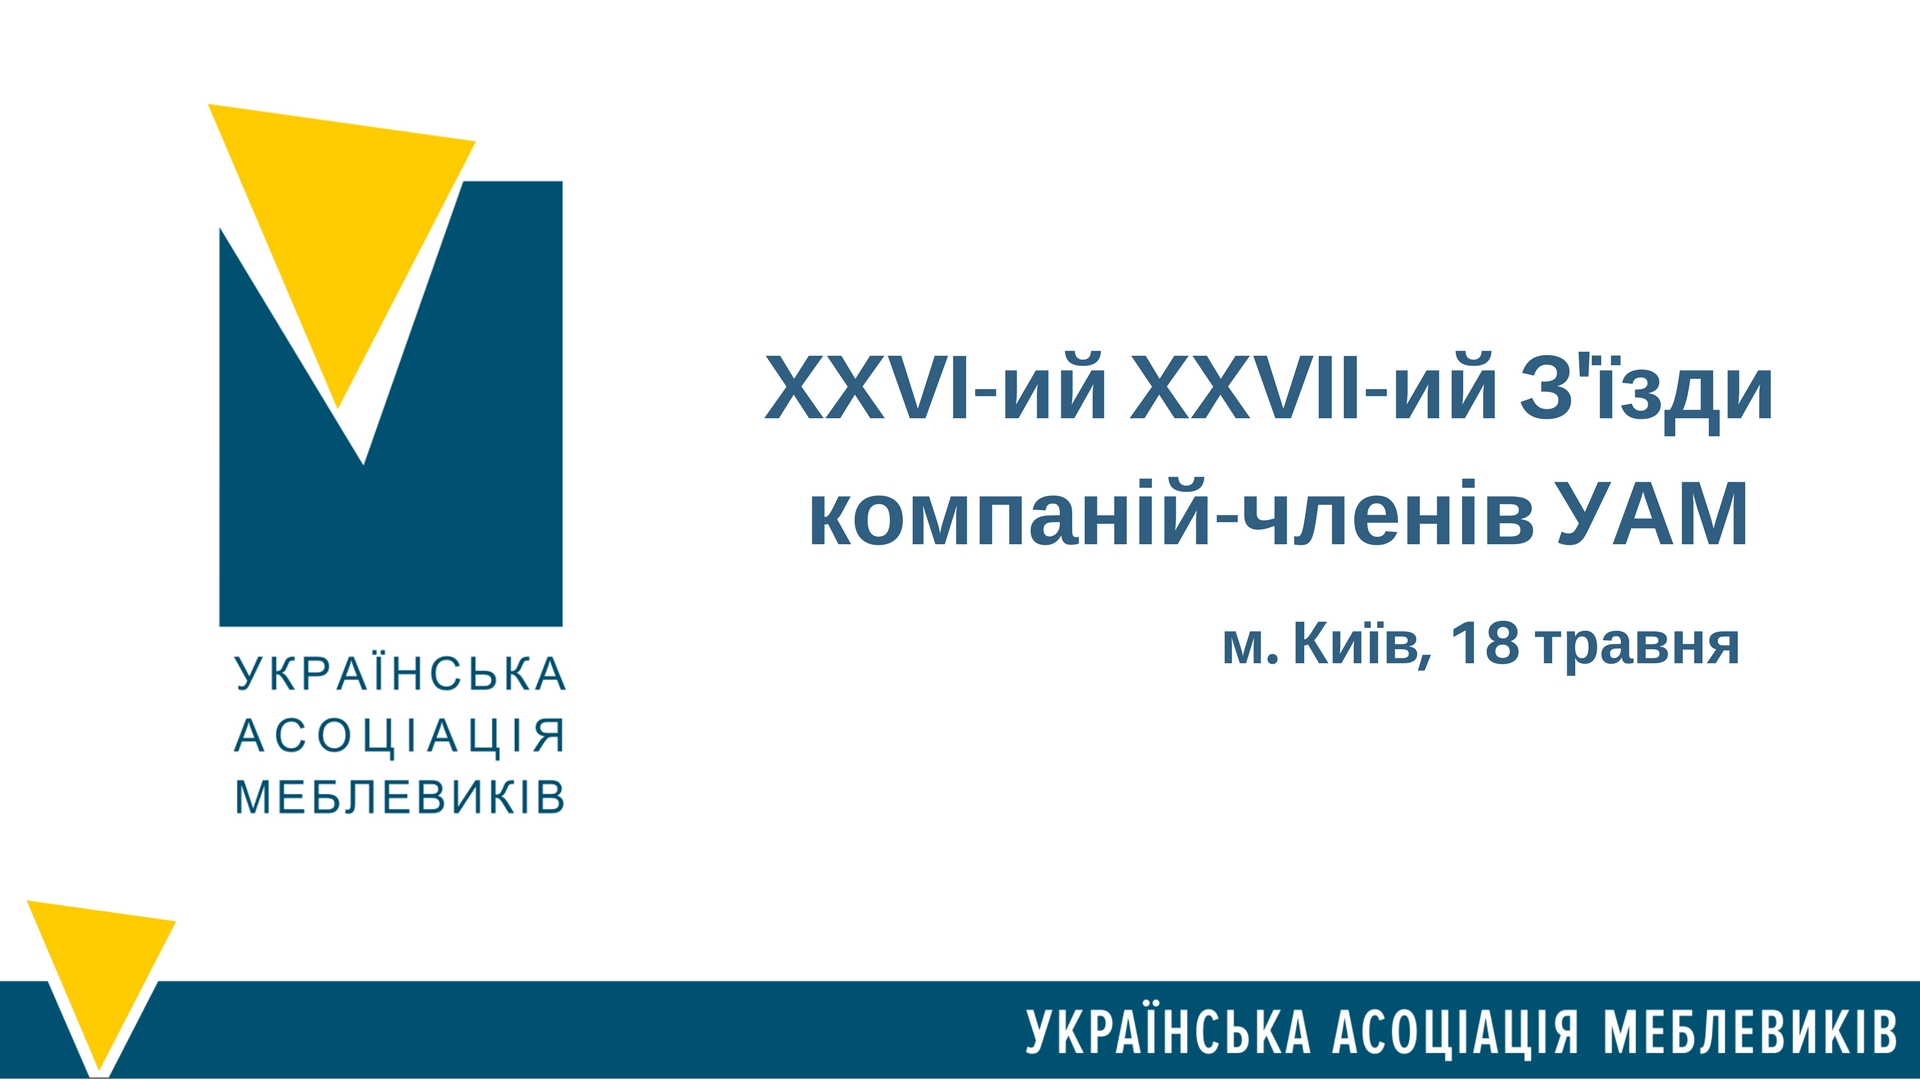 XXVІ-th and XXVІІ-th Congresses of the UAFM members - Ukrainian